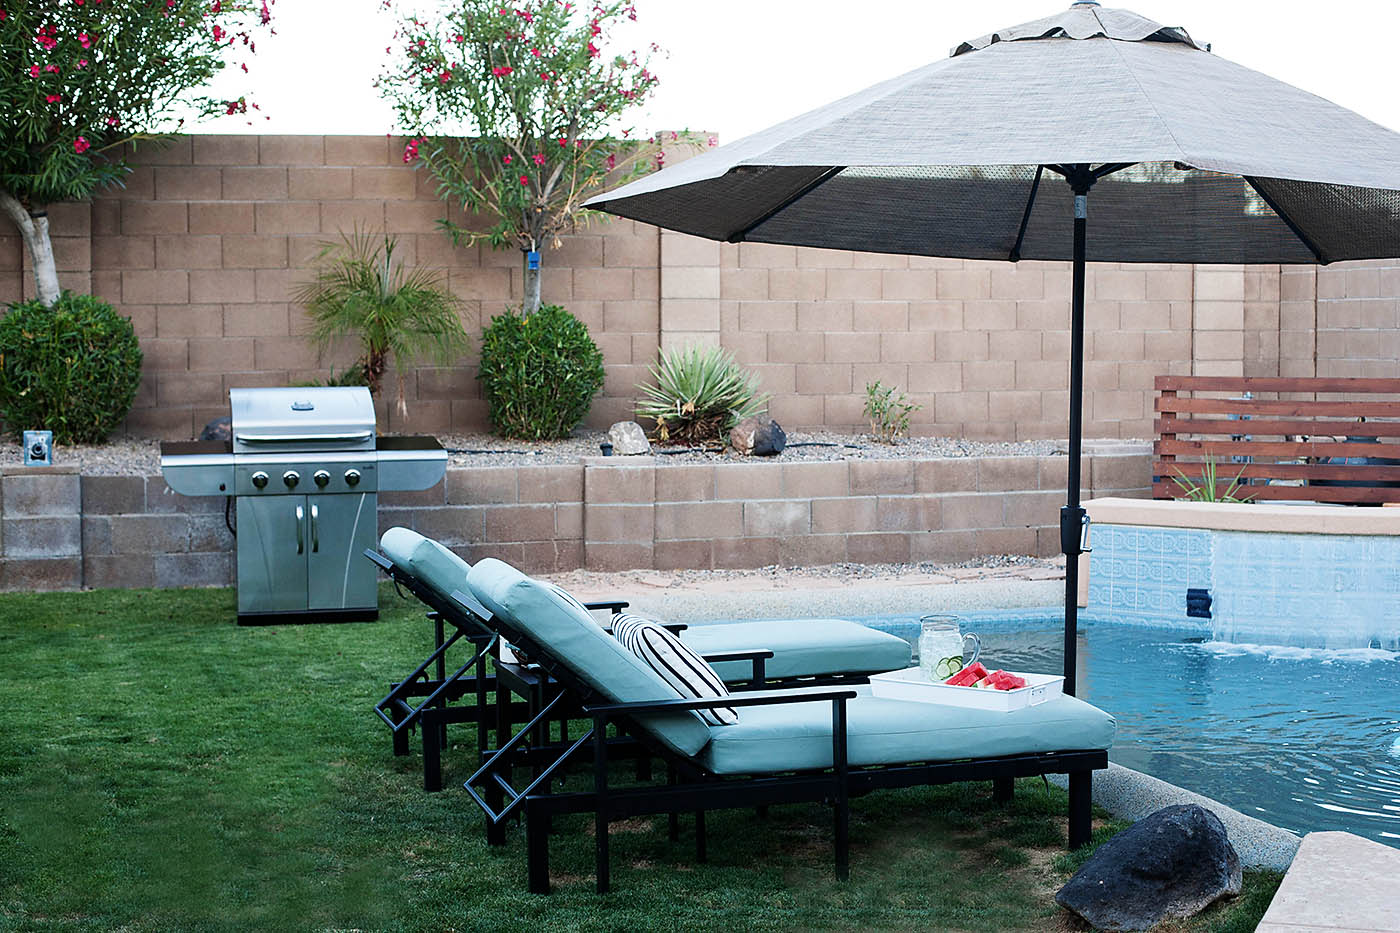 Summer essentials for an entertaining backyard